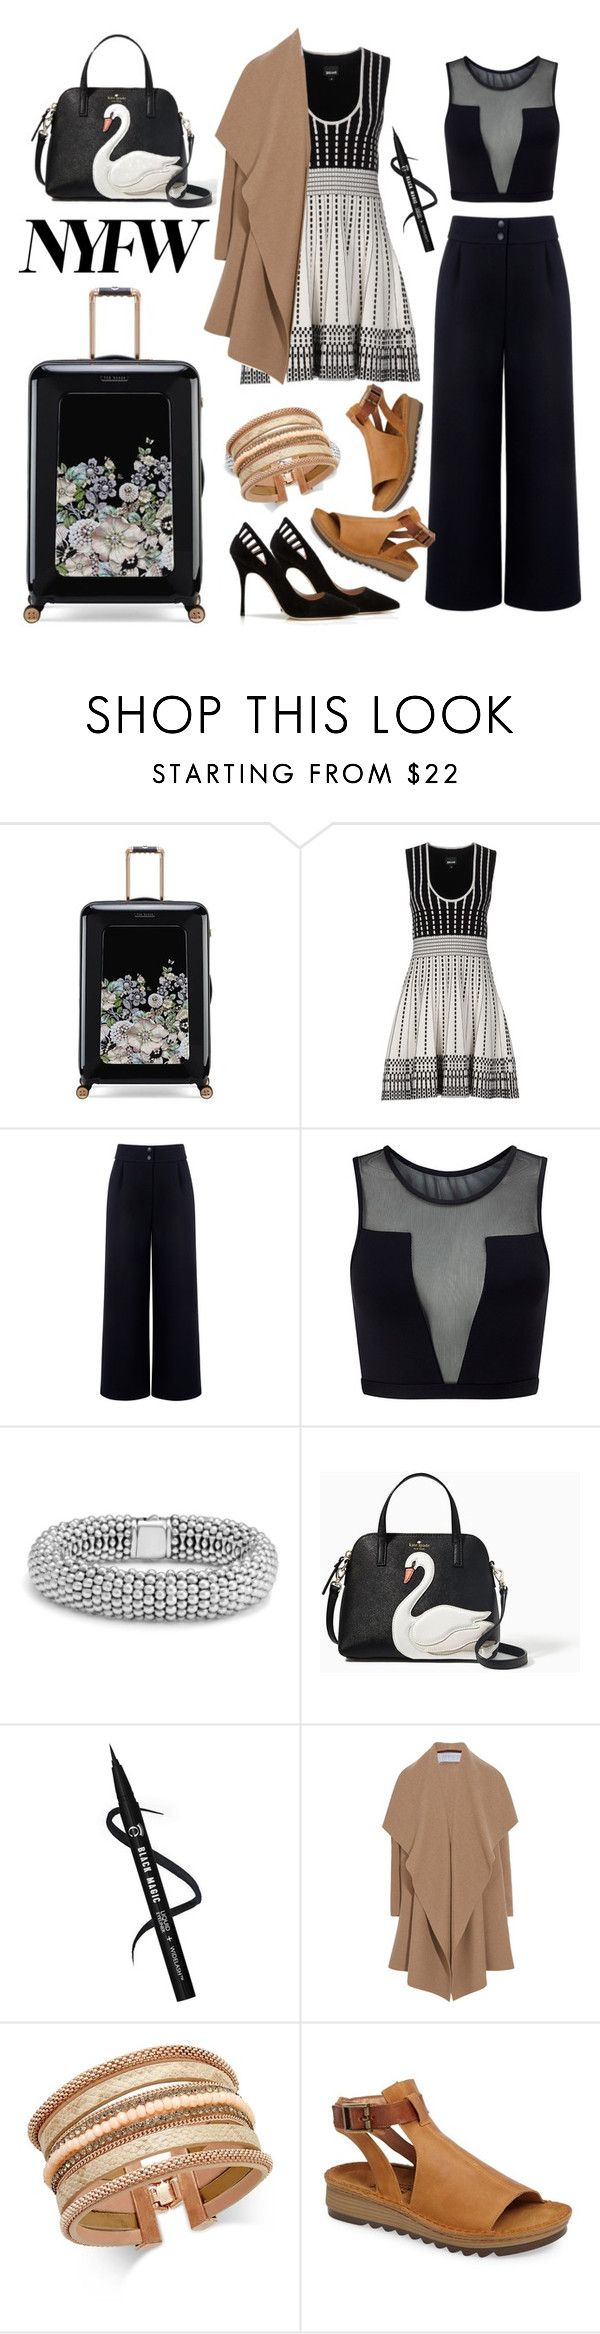 """""""2017 NYFW FEB."""" by princessbollywood ❤ liked on Polyvore featuring Ted Baker, Just Cavalli, Être Cécile, Varley, Manolo Blahnik, Lagos, Kate Spade, Harris Wharf London, INC International Concepts and Naot"""